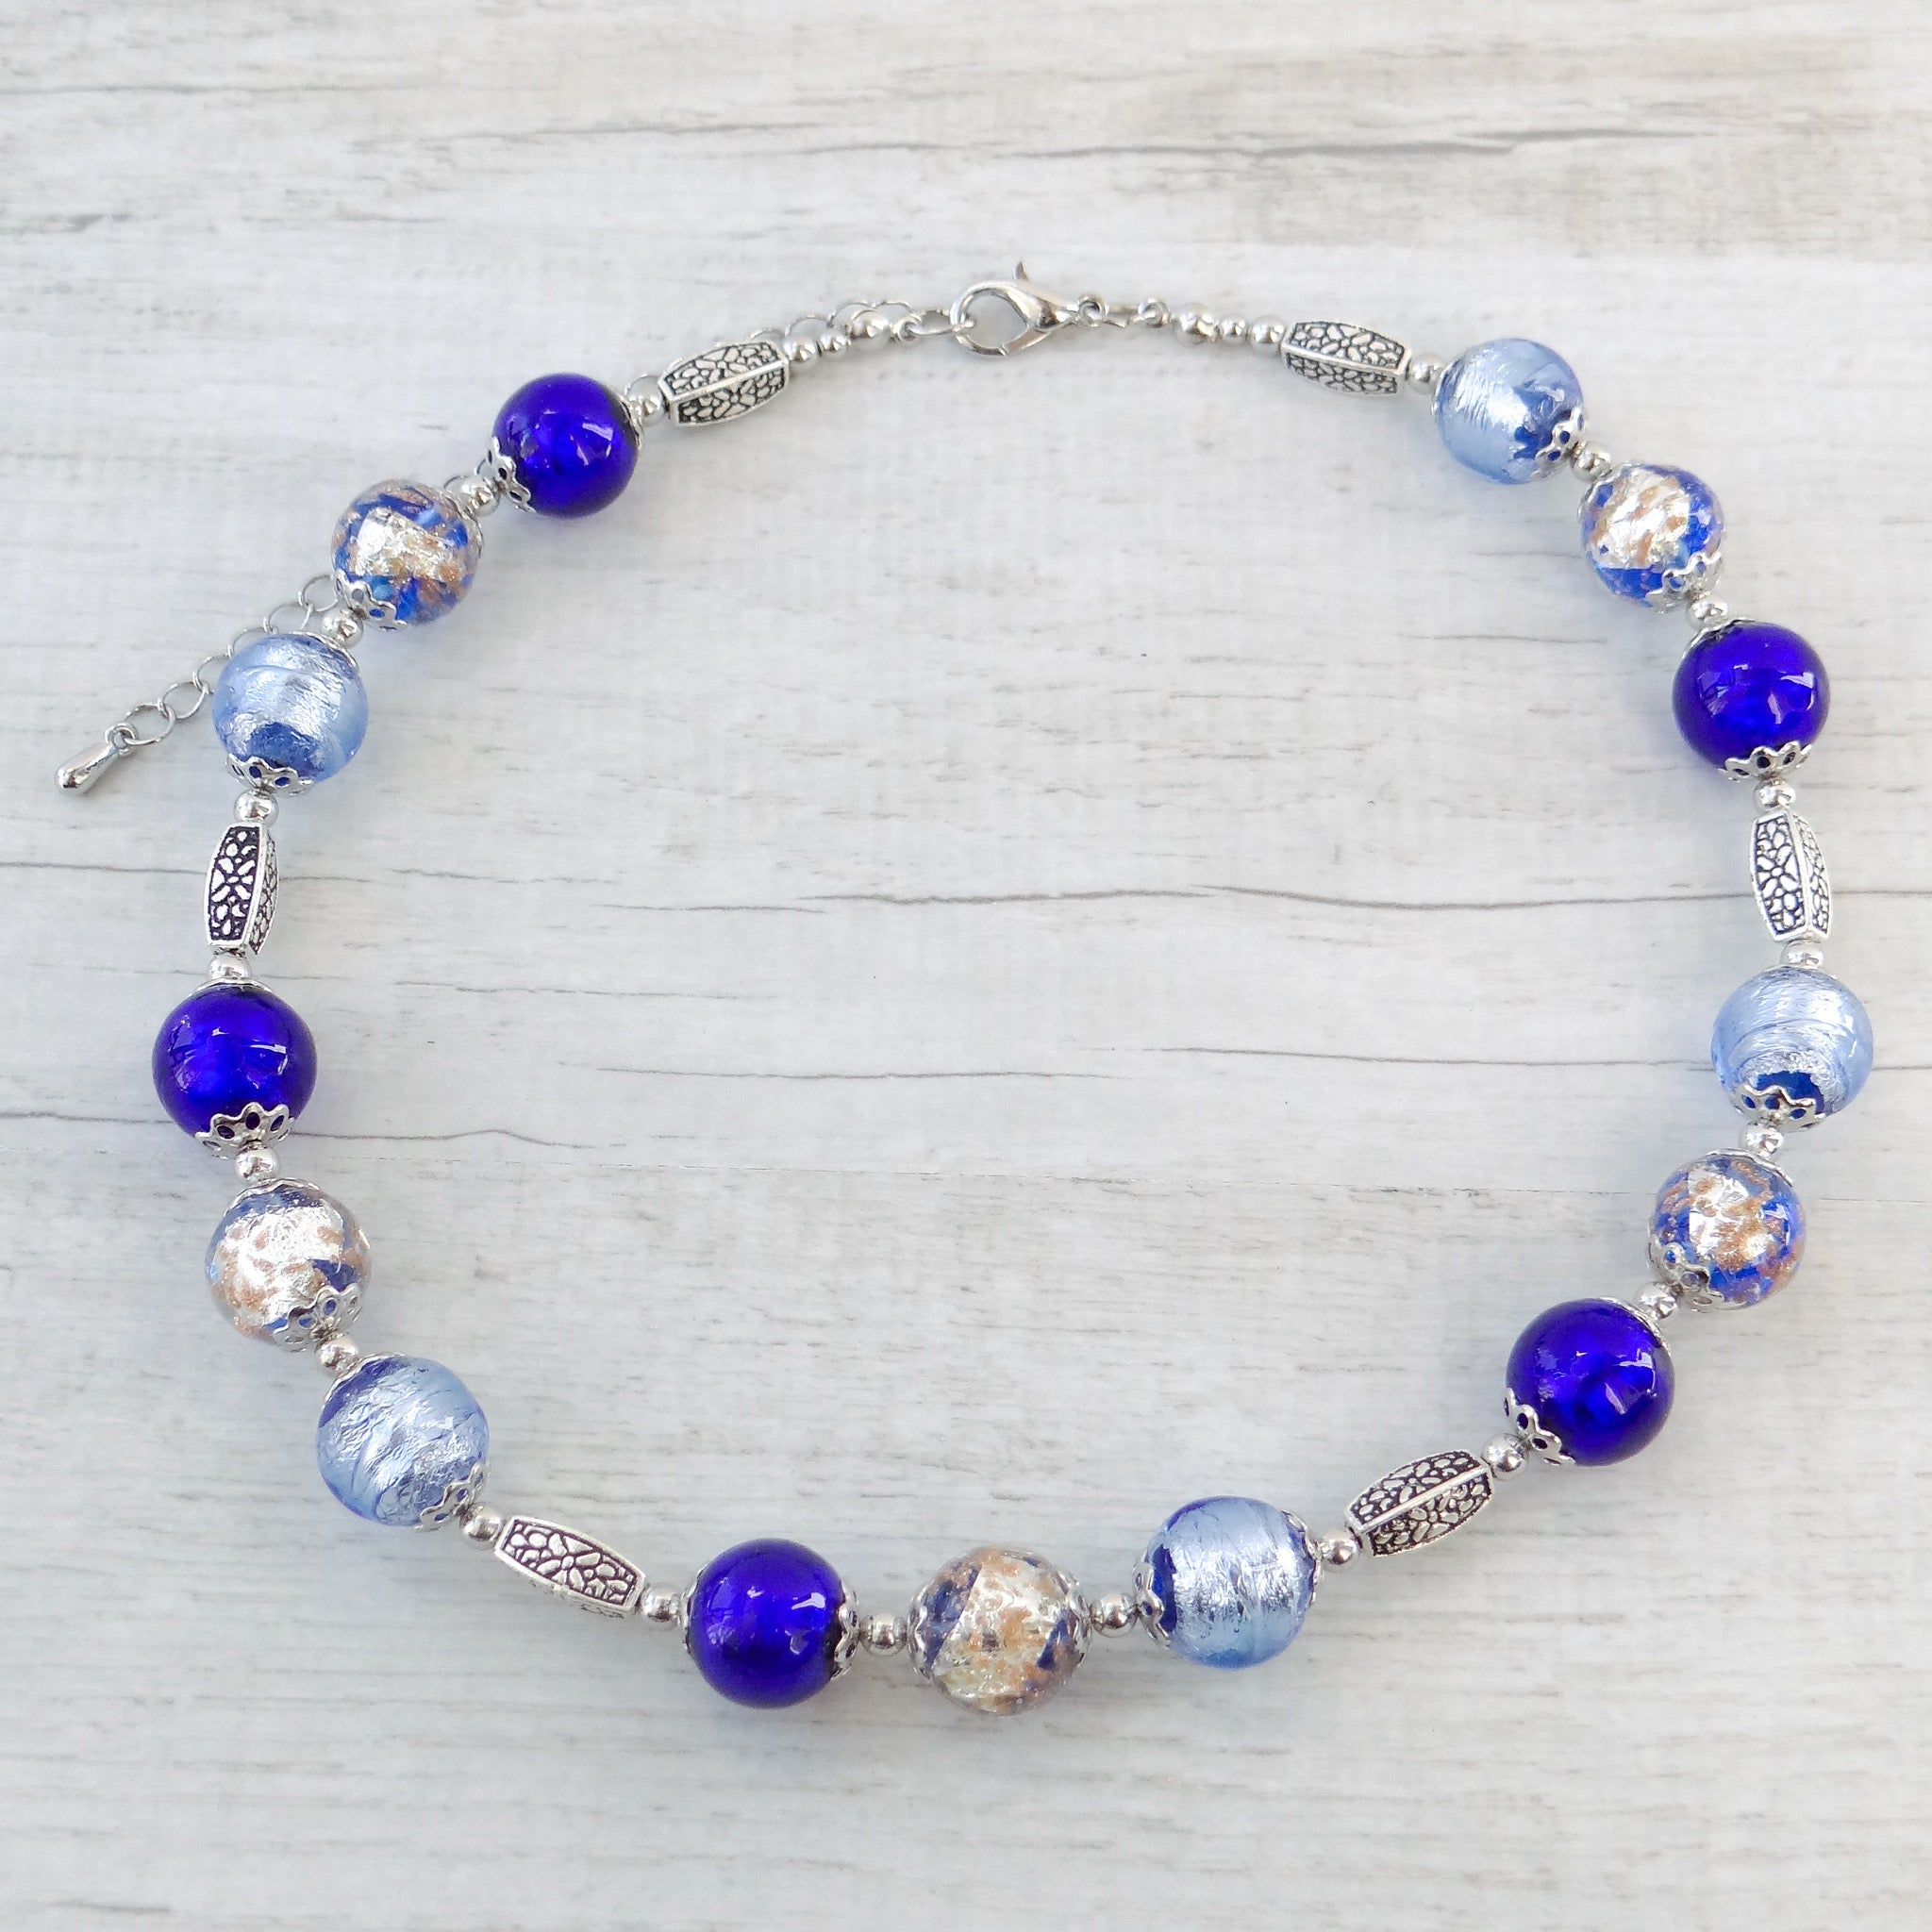 Baète - Periwinkle Murano Glass Necklace